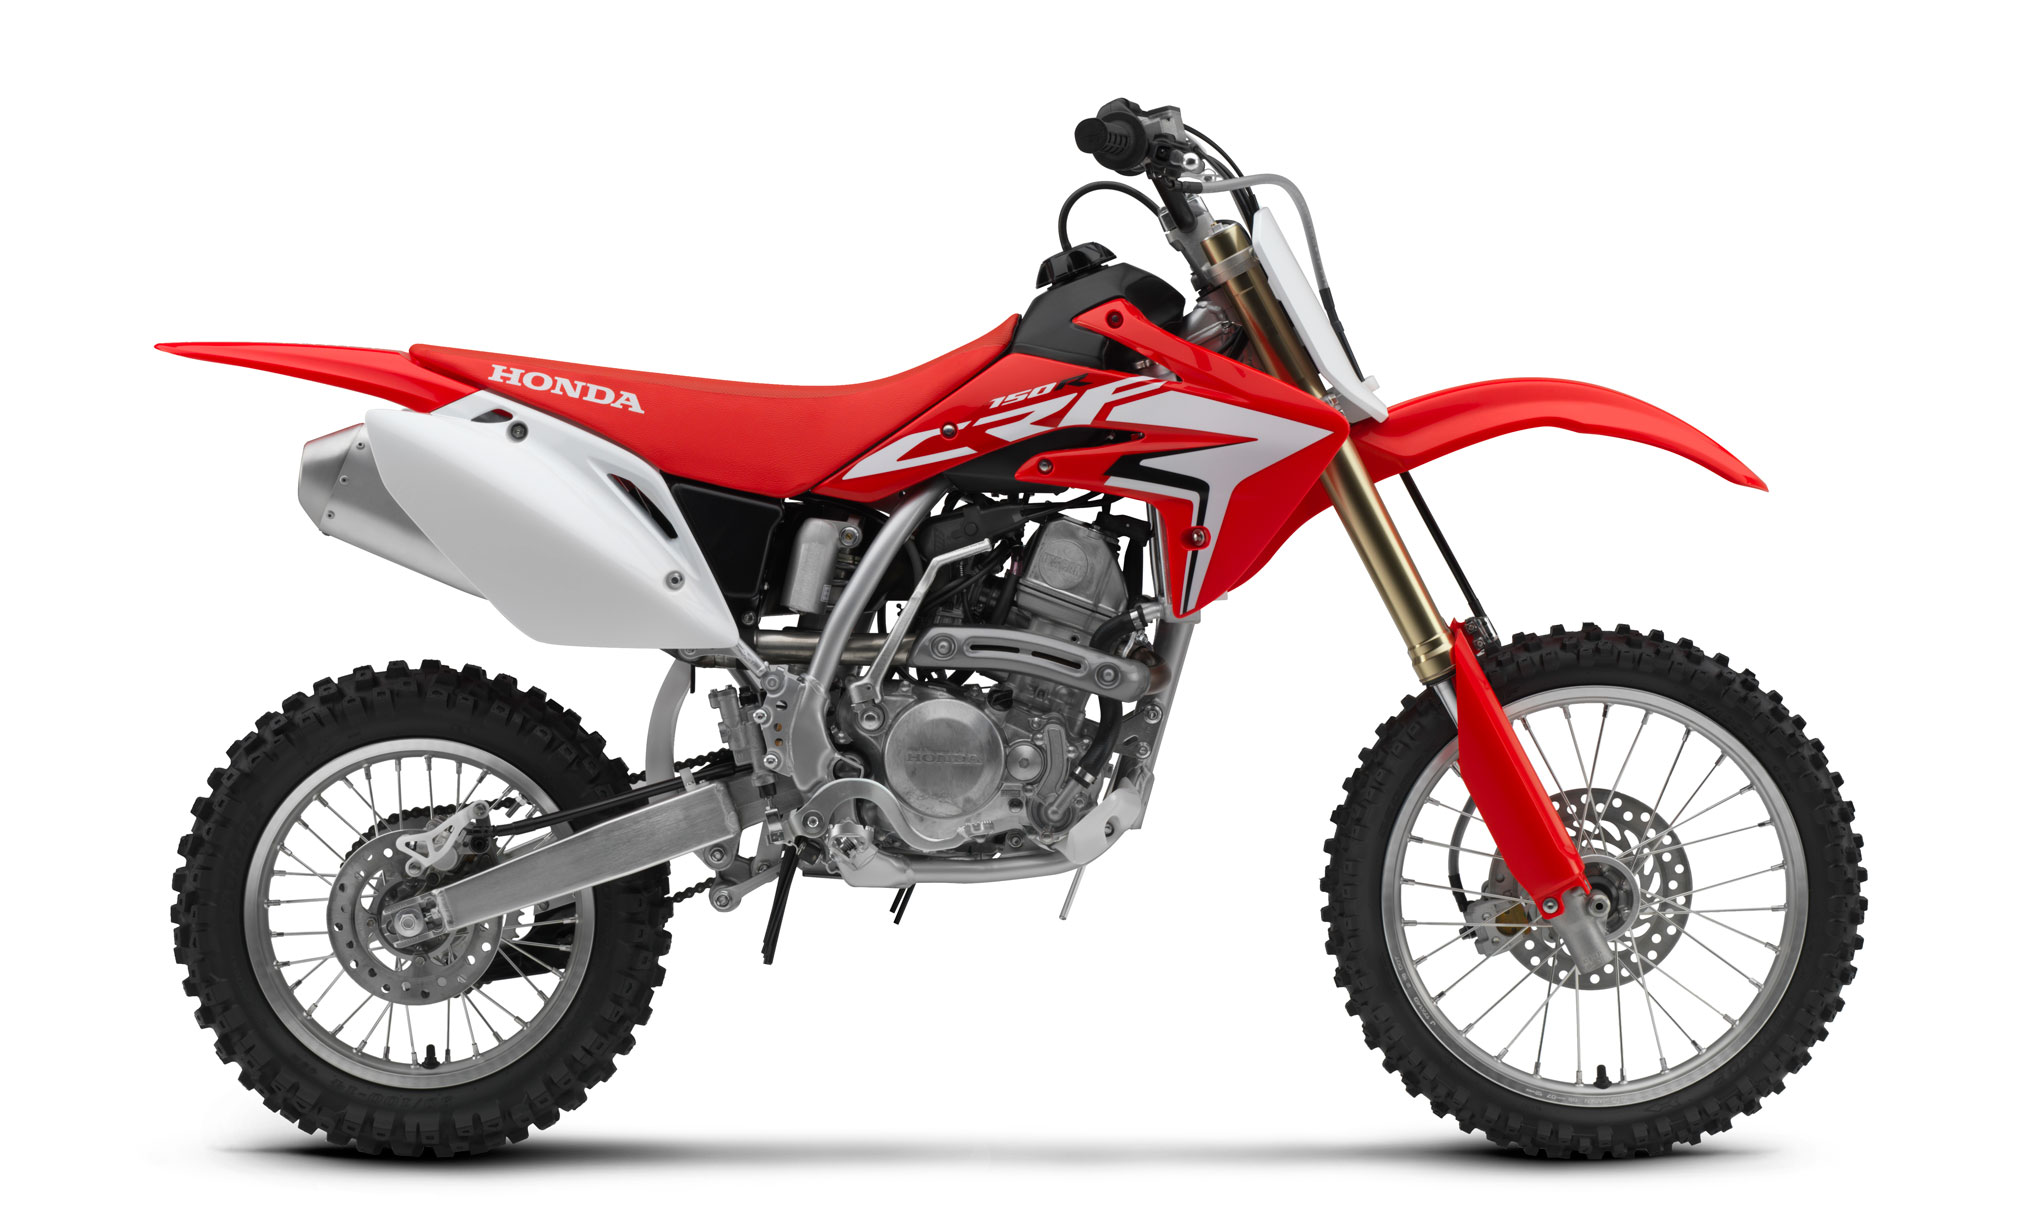 2021 honda crf150r guide • total motorcycle